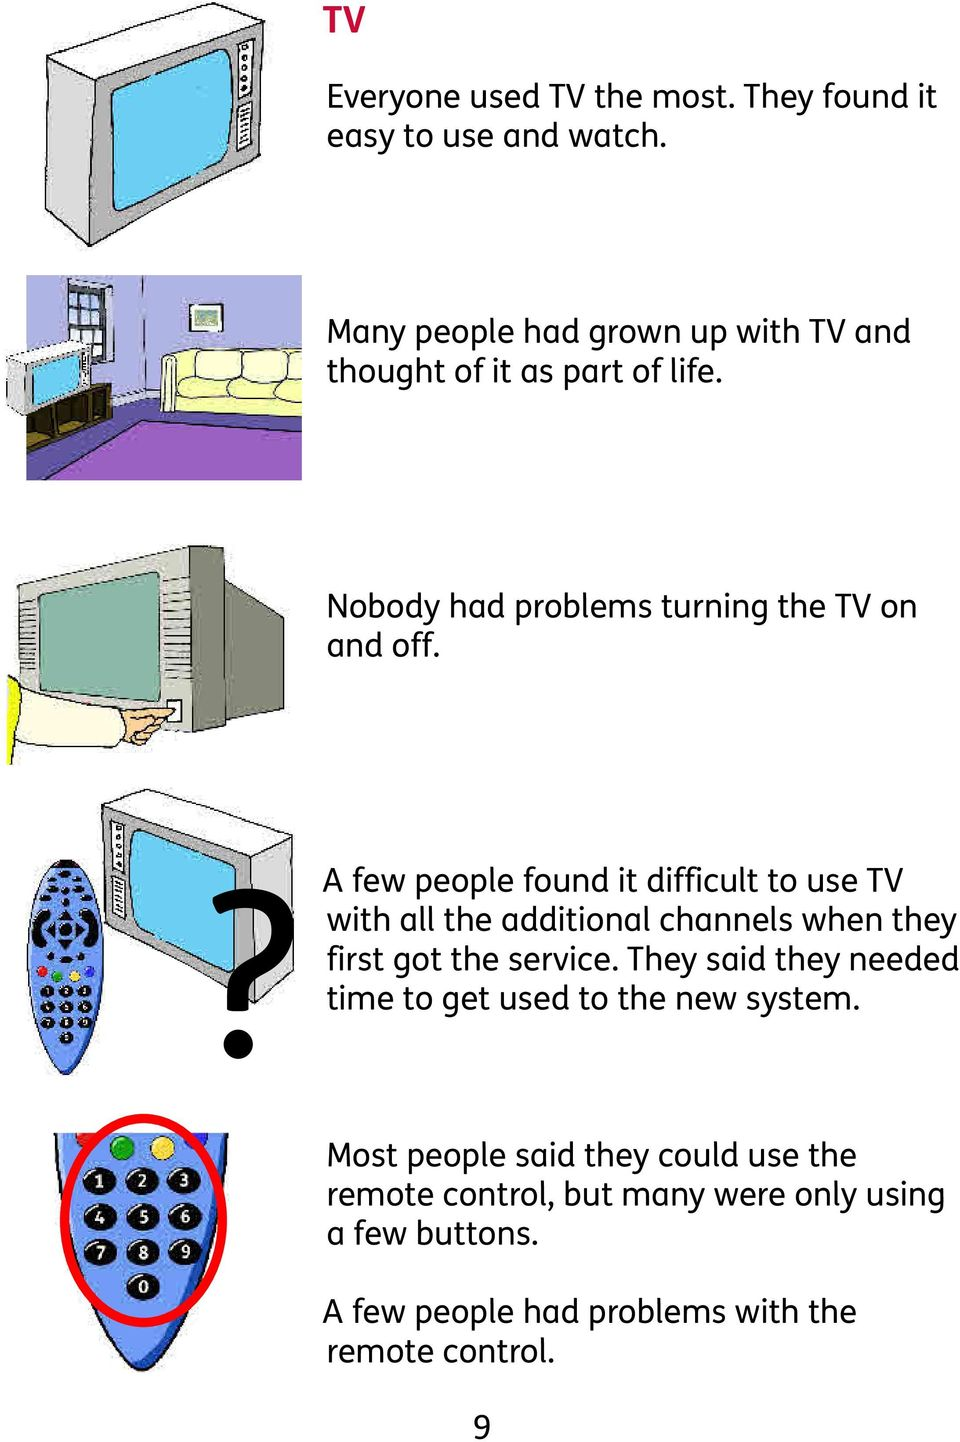 ? A few people found it difficult to use TV with all the additional channels when they first got the service.